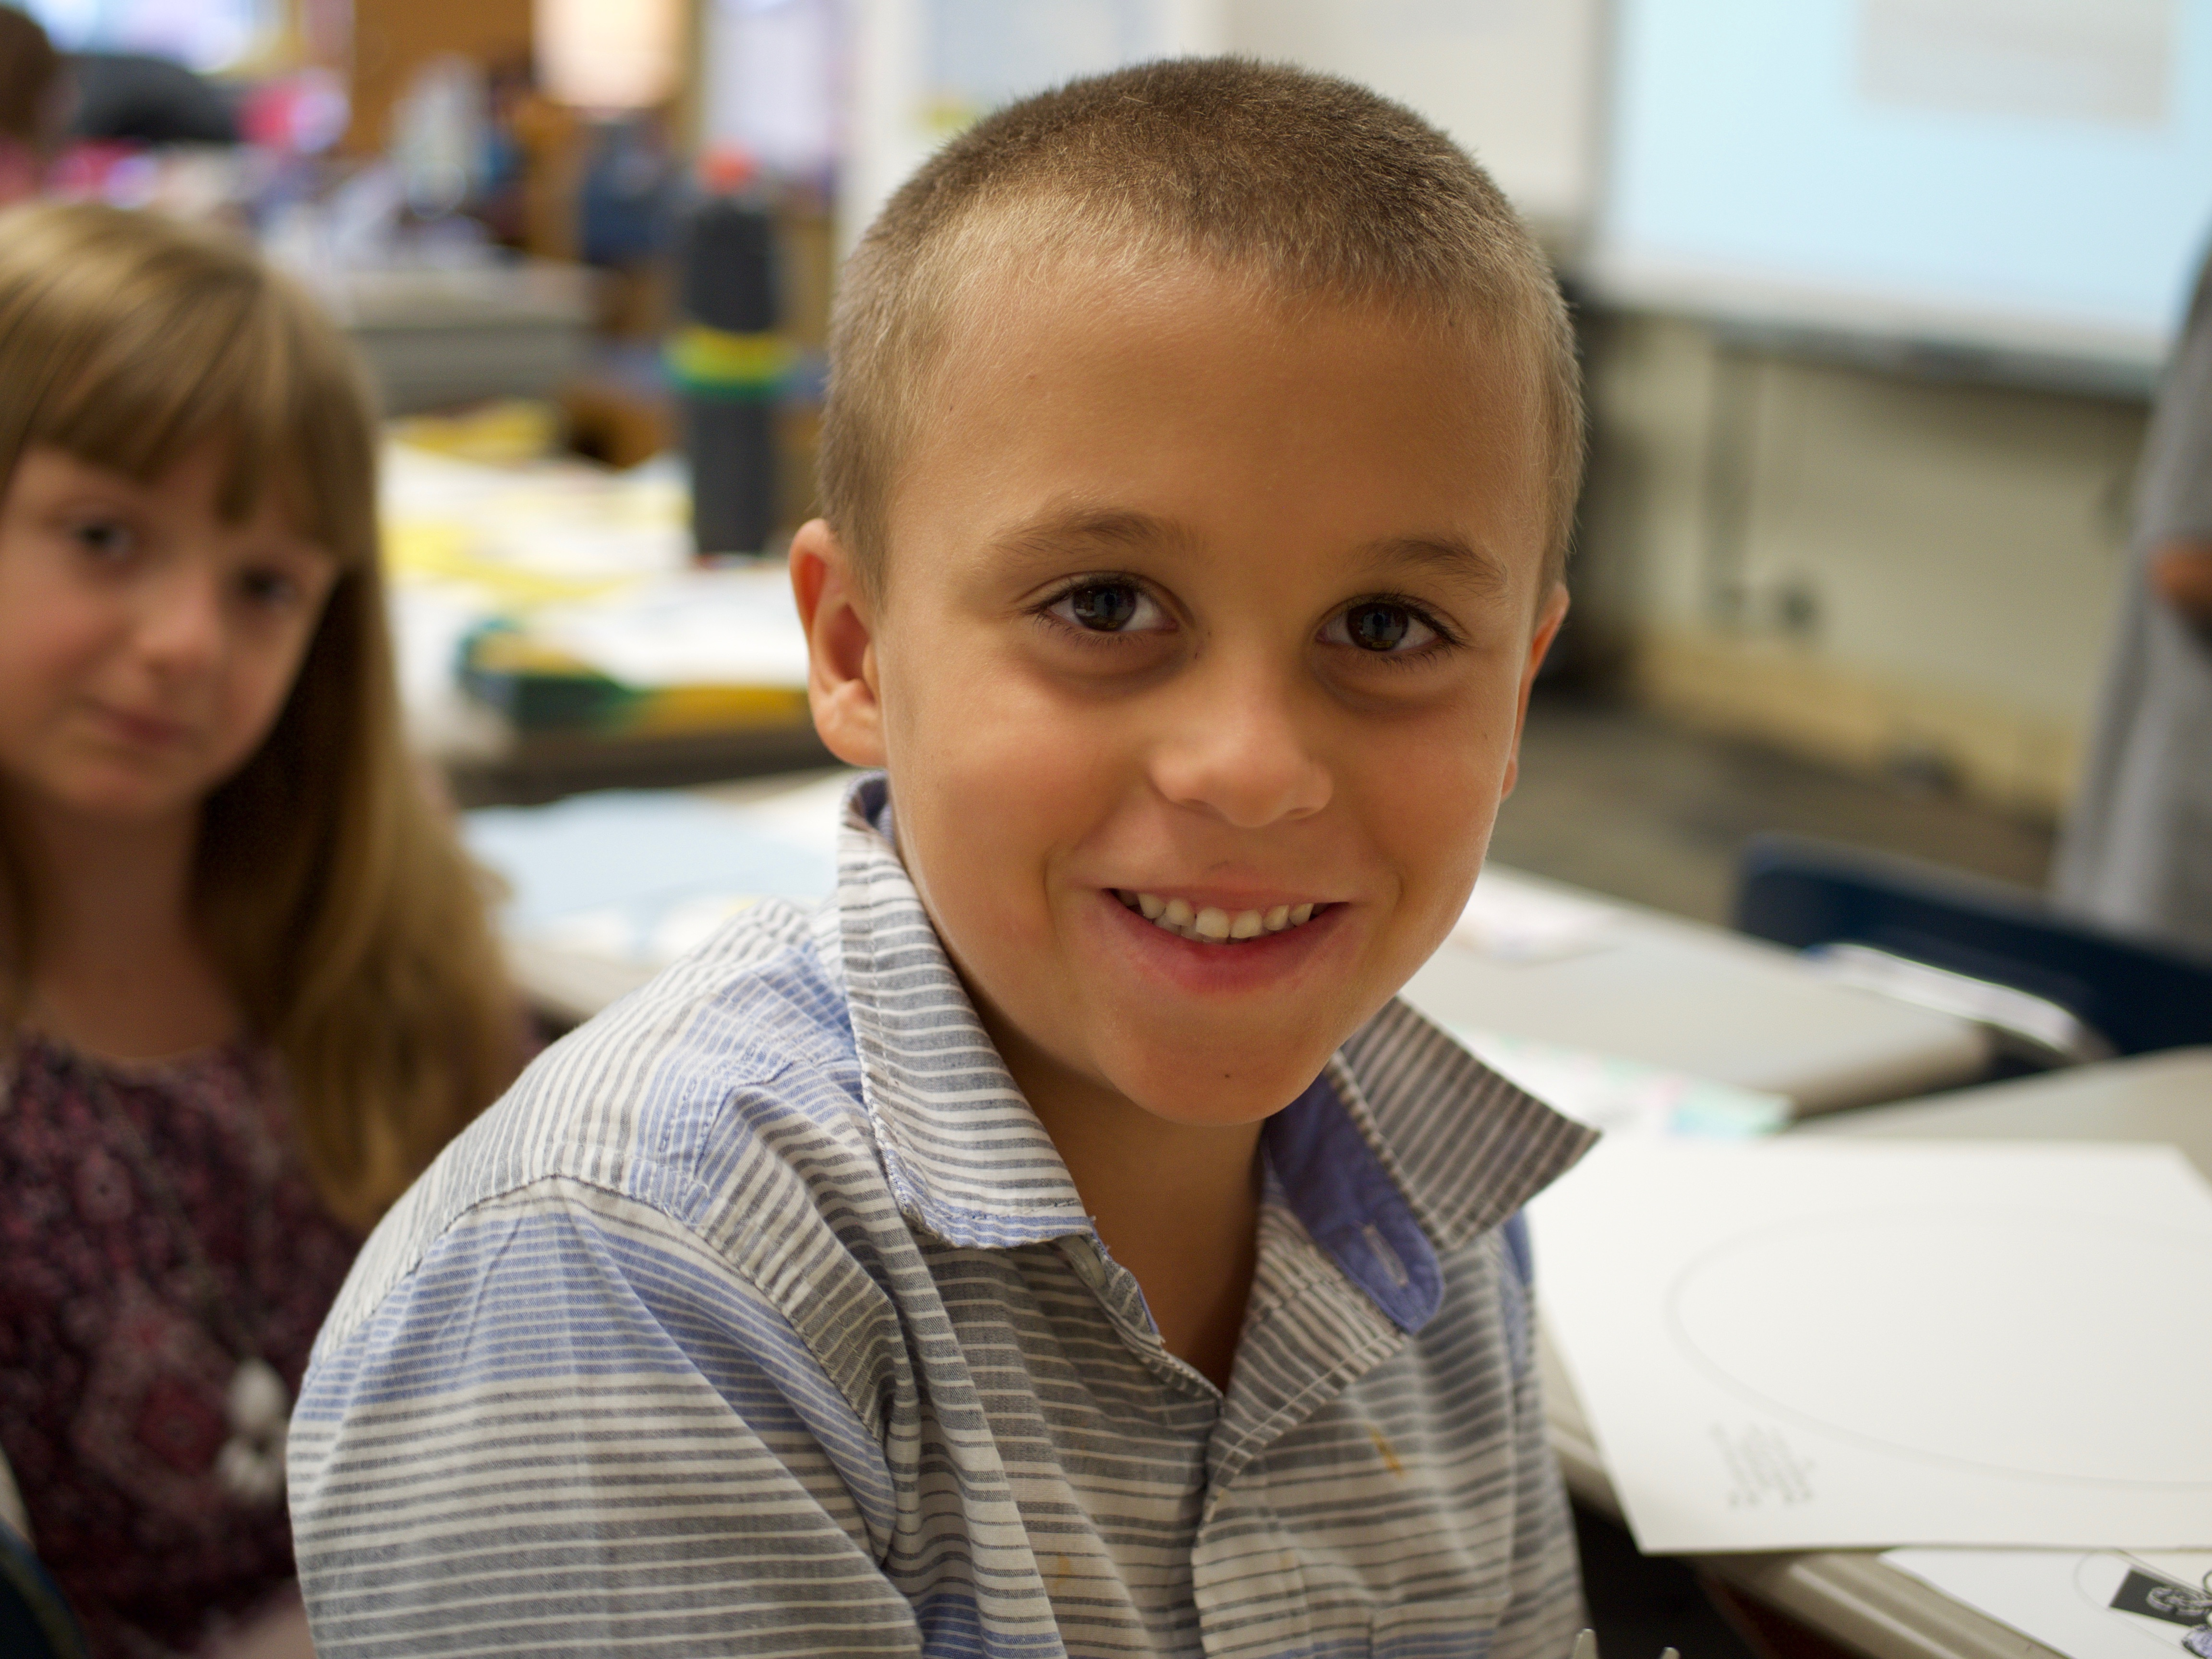 Slideshow: Boy smiles at camera from classroom desk